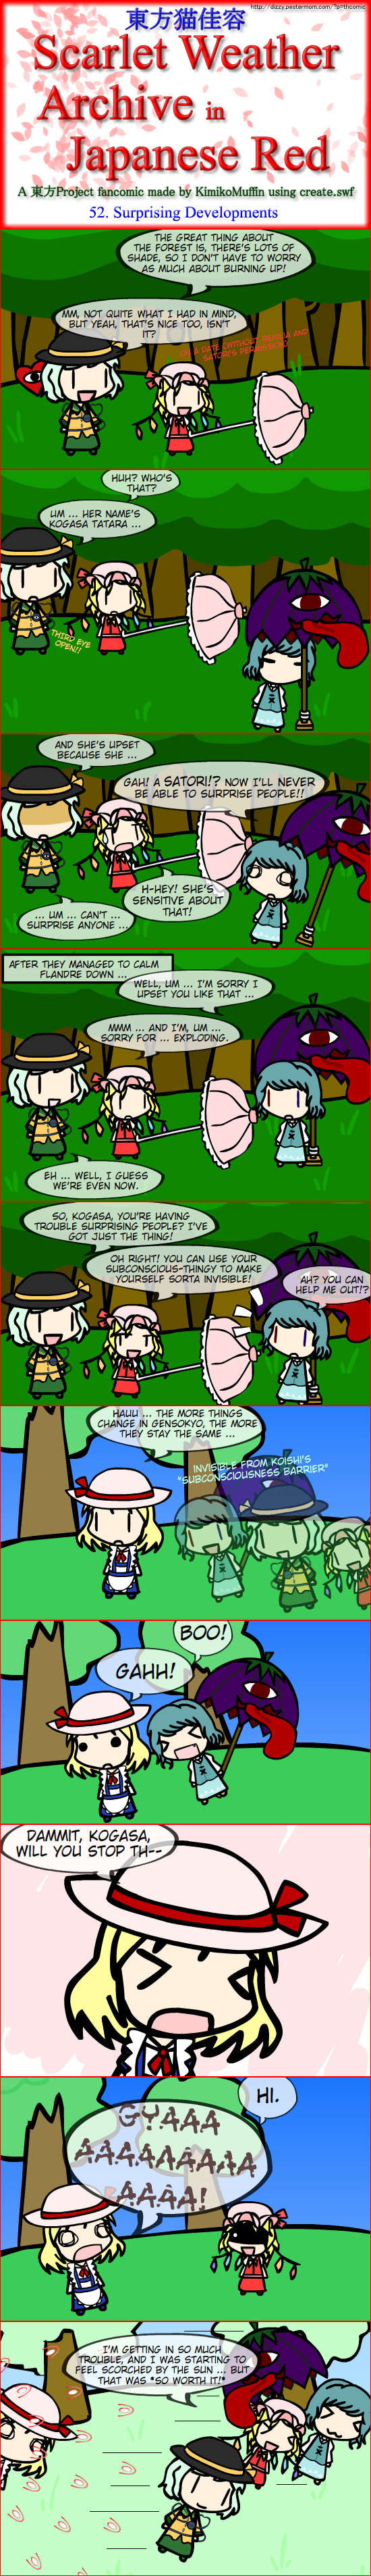 Touhou Nekokayou: Scarlet Weather Archive in Japanese Red #52